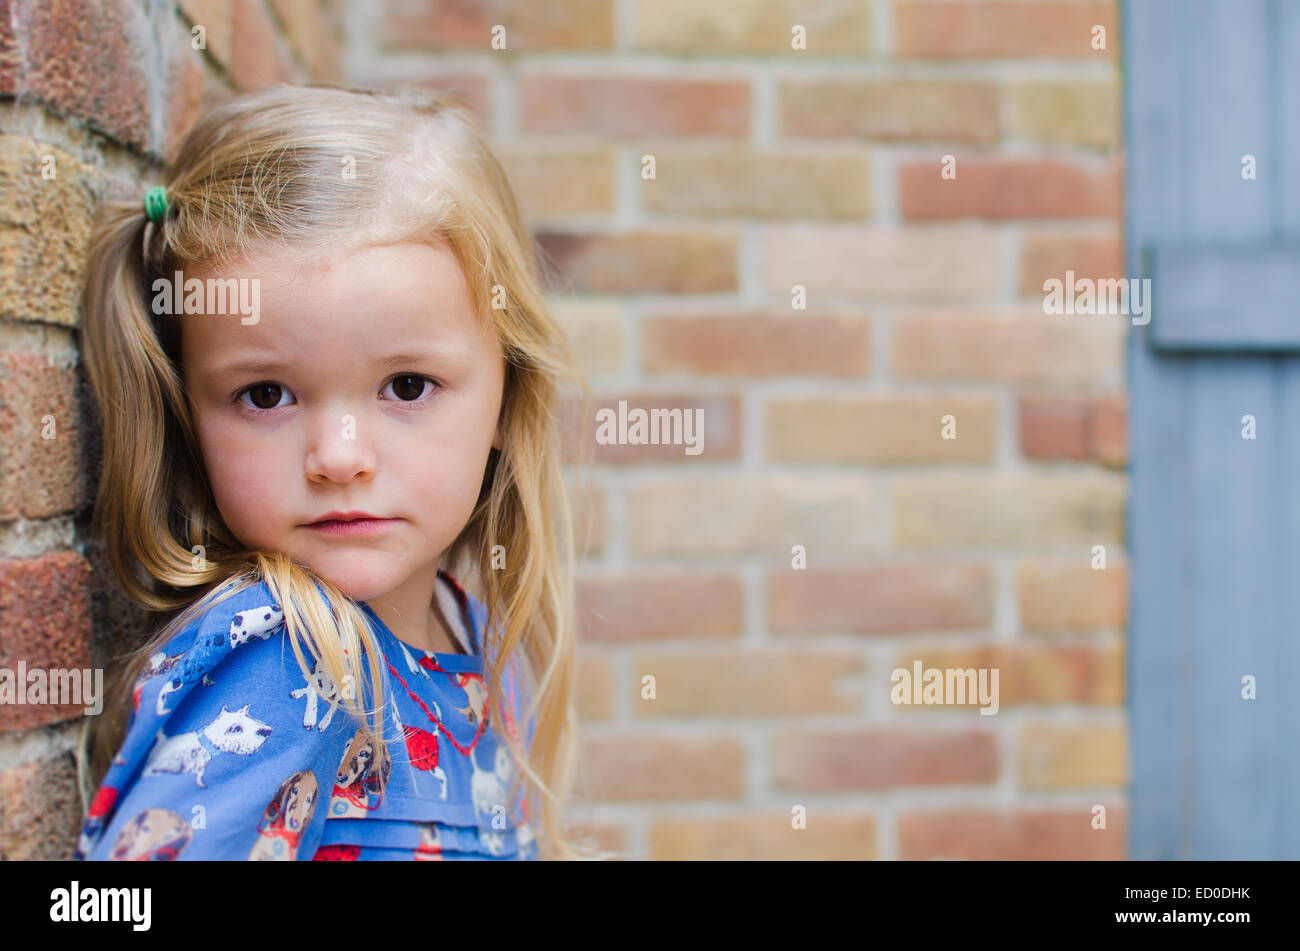 Portrait of girl leaning against brick wall - Stock Image